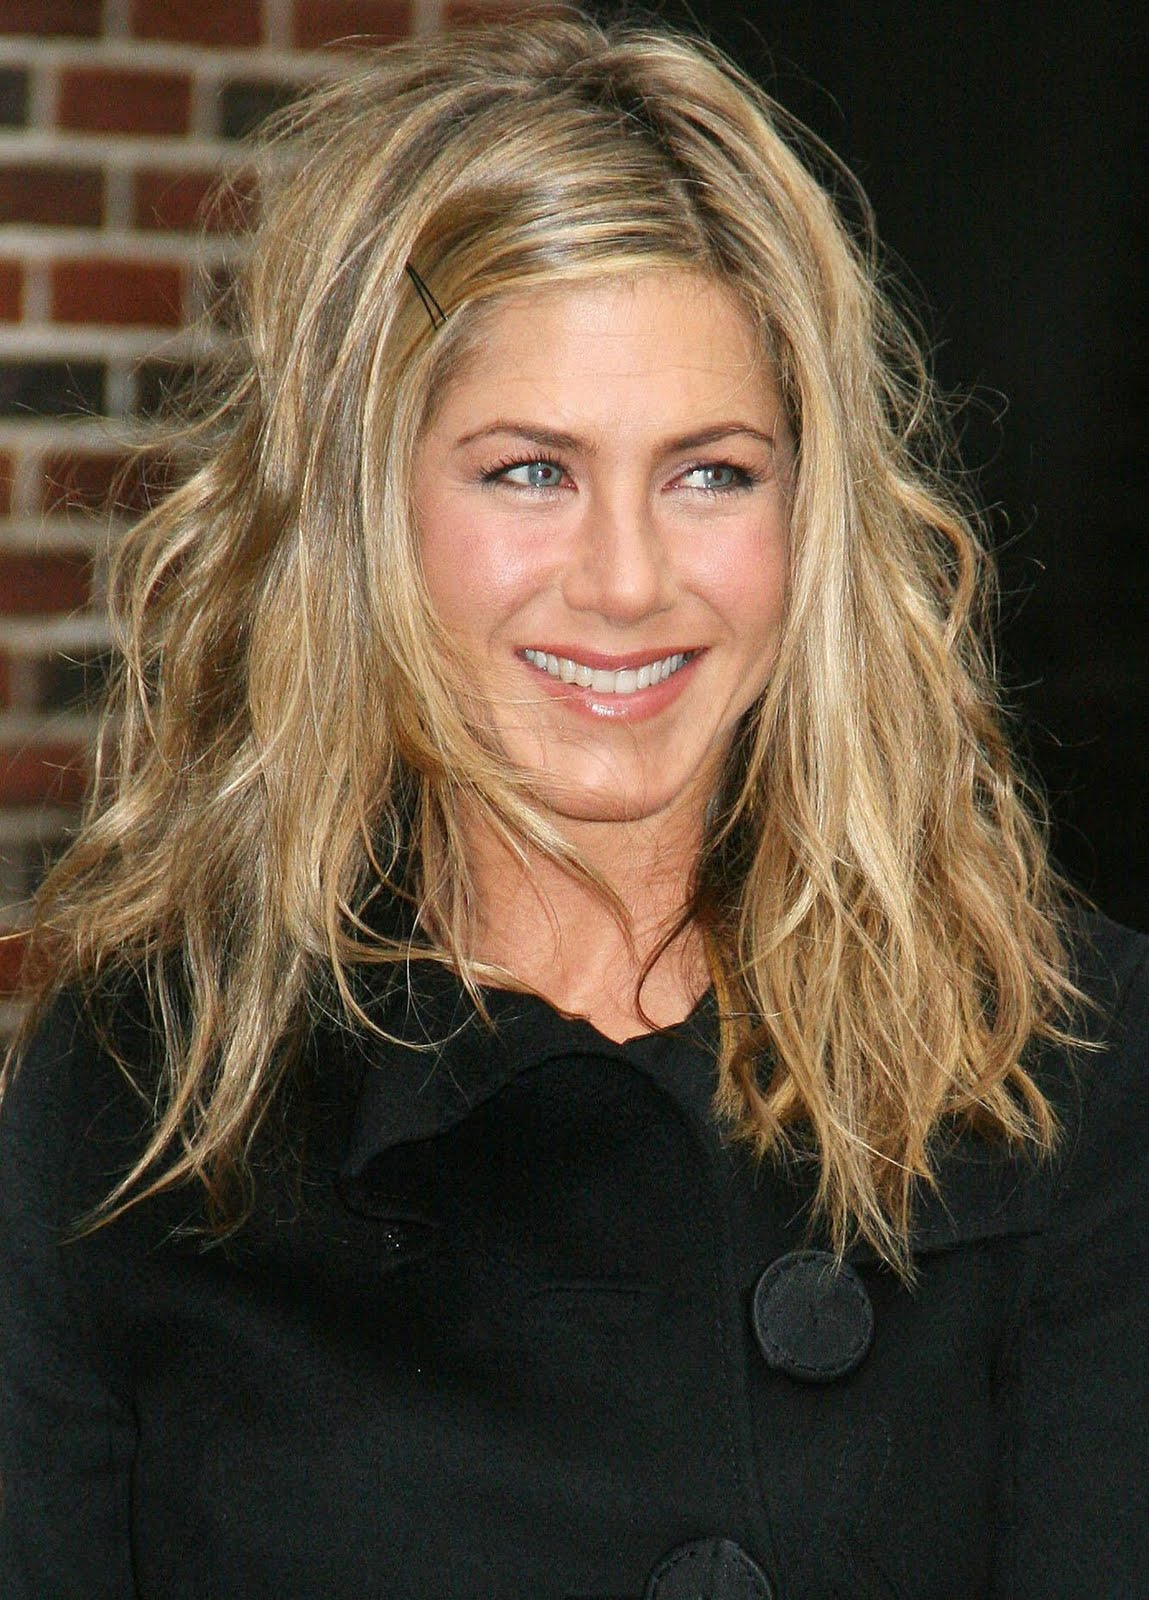 http://4.bp.blogspot.com/-WLcGPSBT4ZE/TlADayAw81I/AAAAAAAAAOQ/tLHRDw09rCE/s1600/Jennifer-Aniston-movie-pics-pictures-photos-images-adam-bio%2B%2525281%252529.jpeg